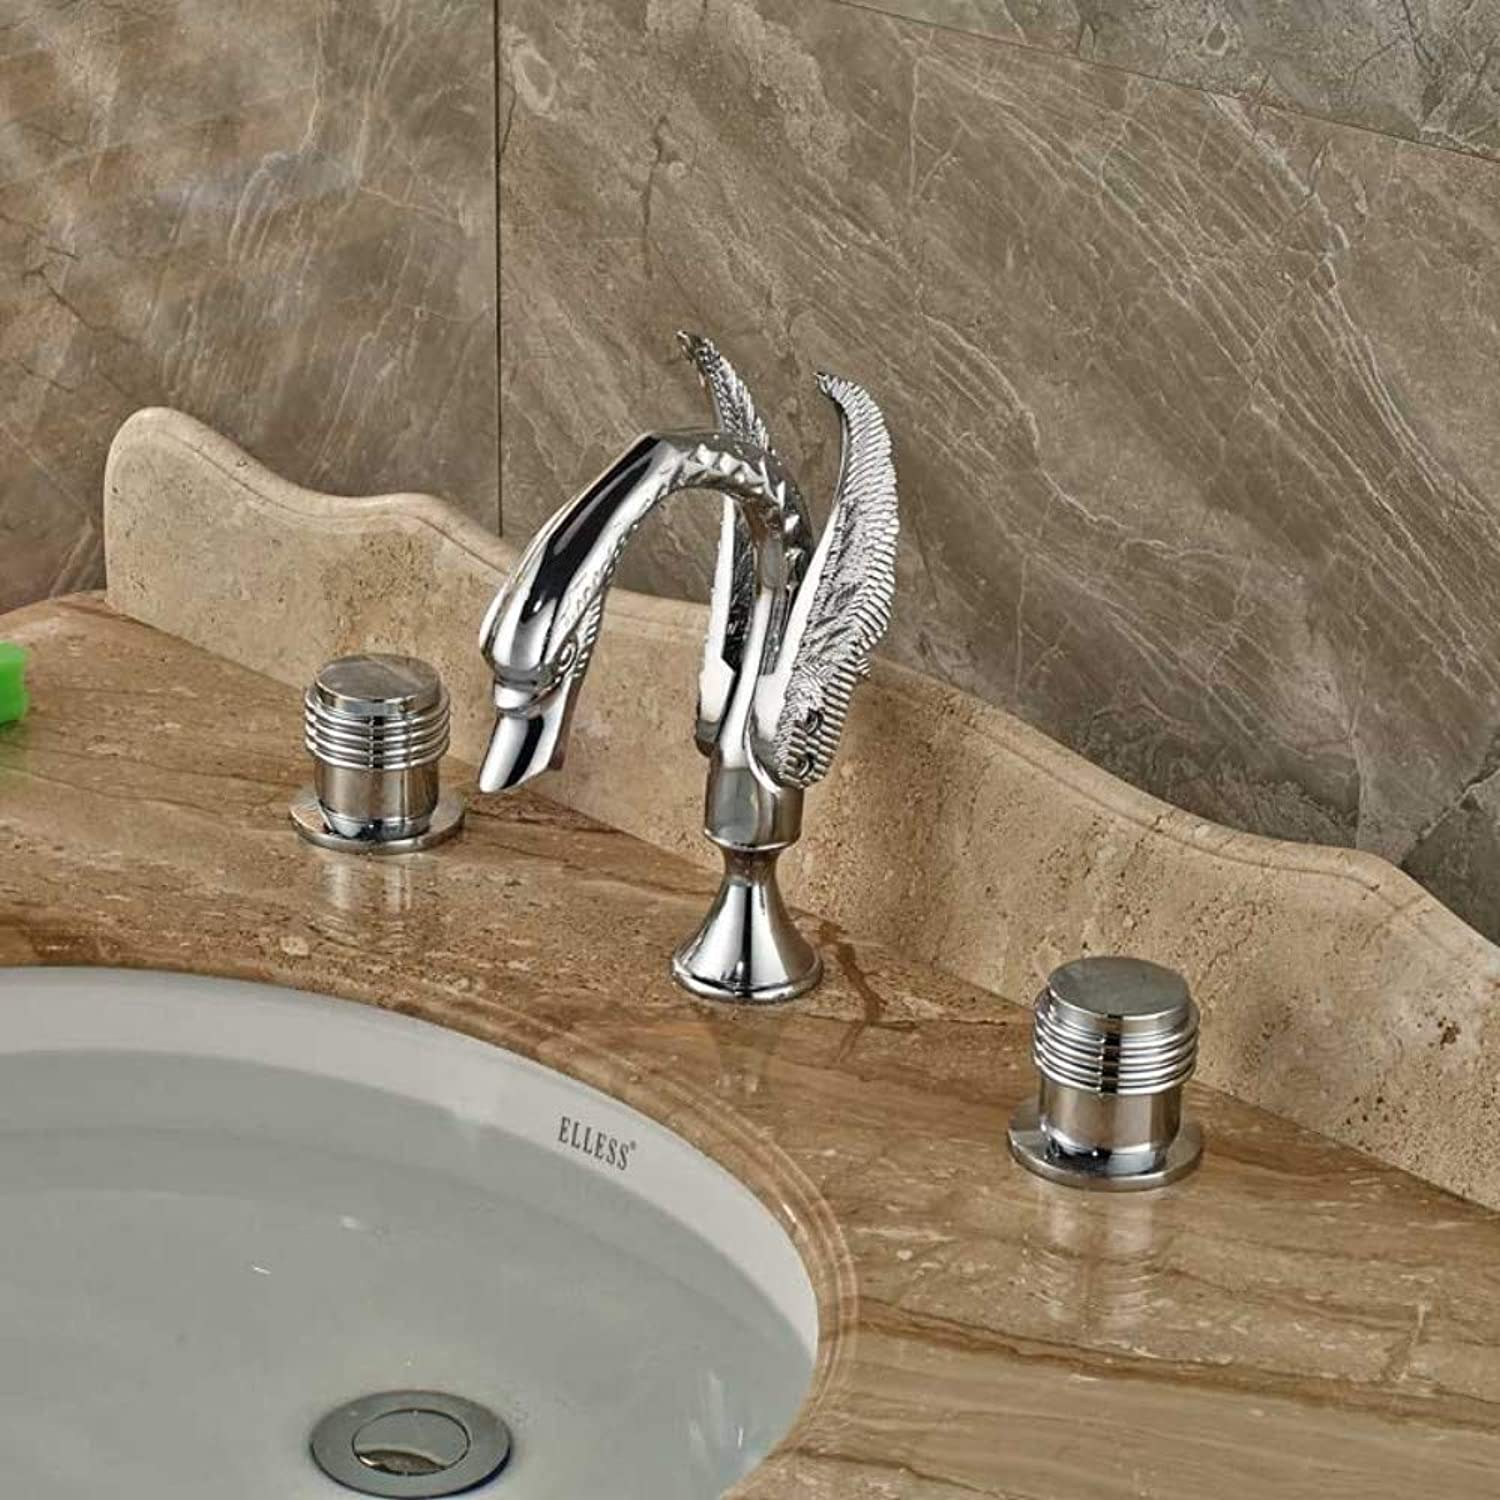 CZOOR Polished Chrome Swan Style Widespread 3 Hole Basin Sink Faucet Dual Handle Deck Mount Lavatory Sink Mixer Tap